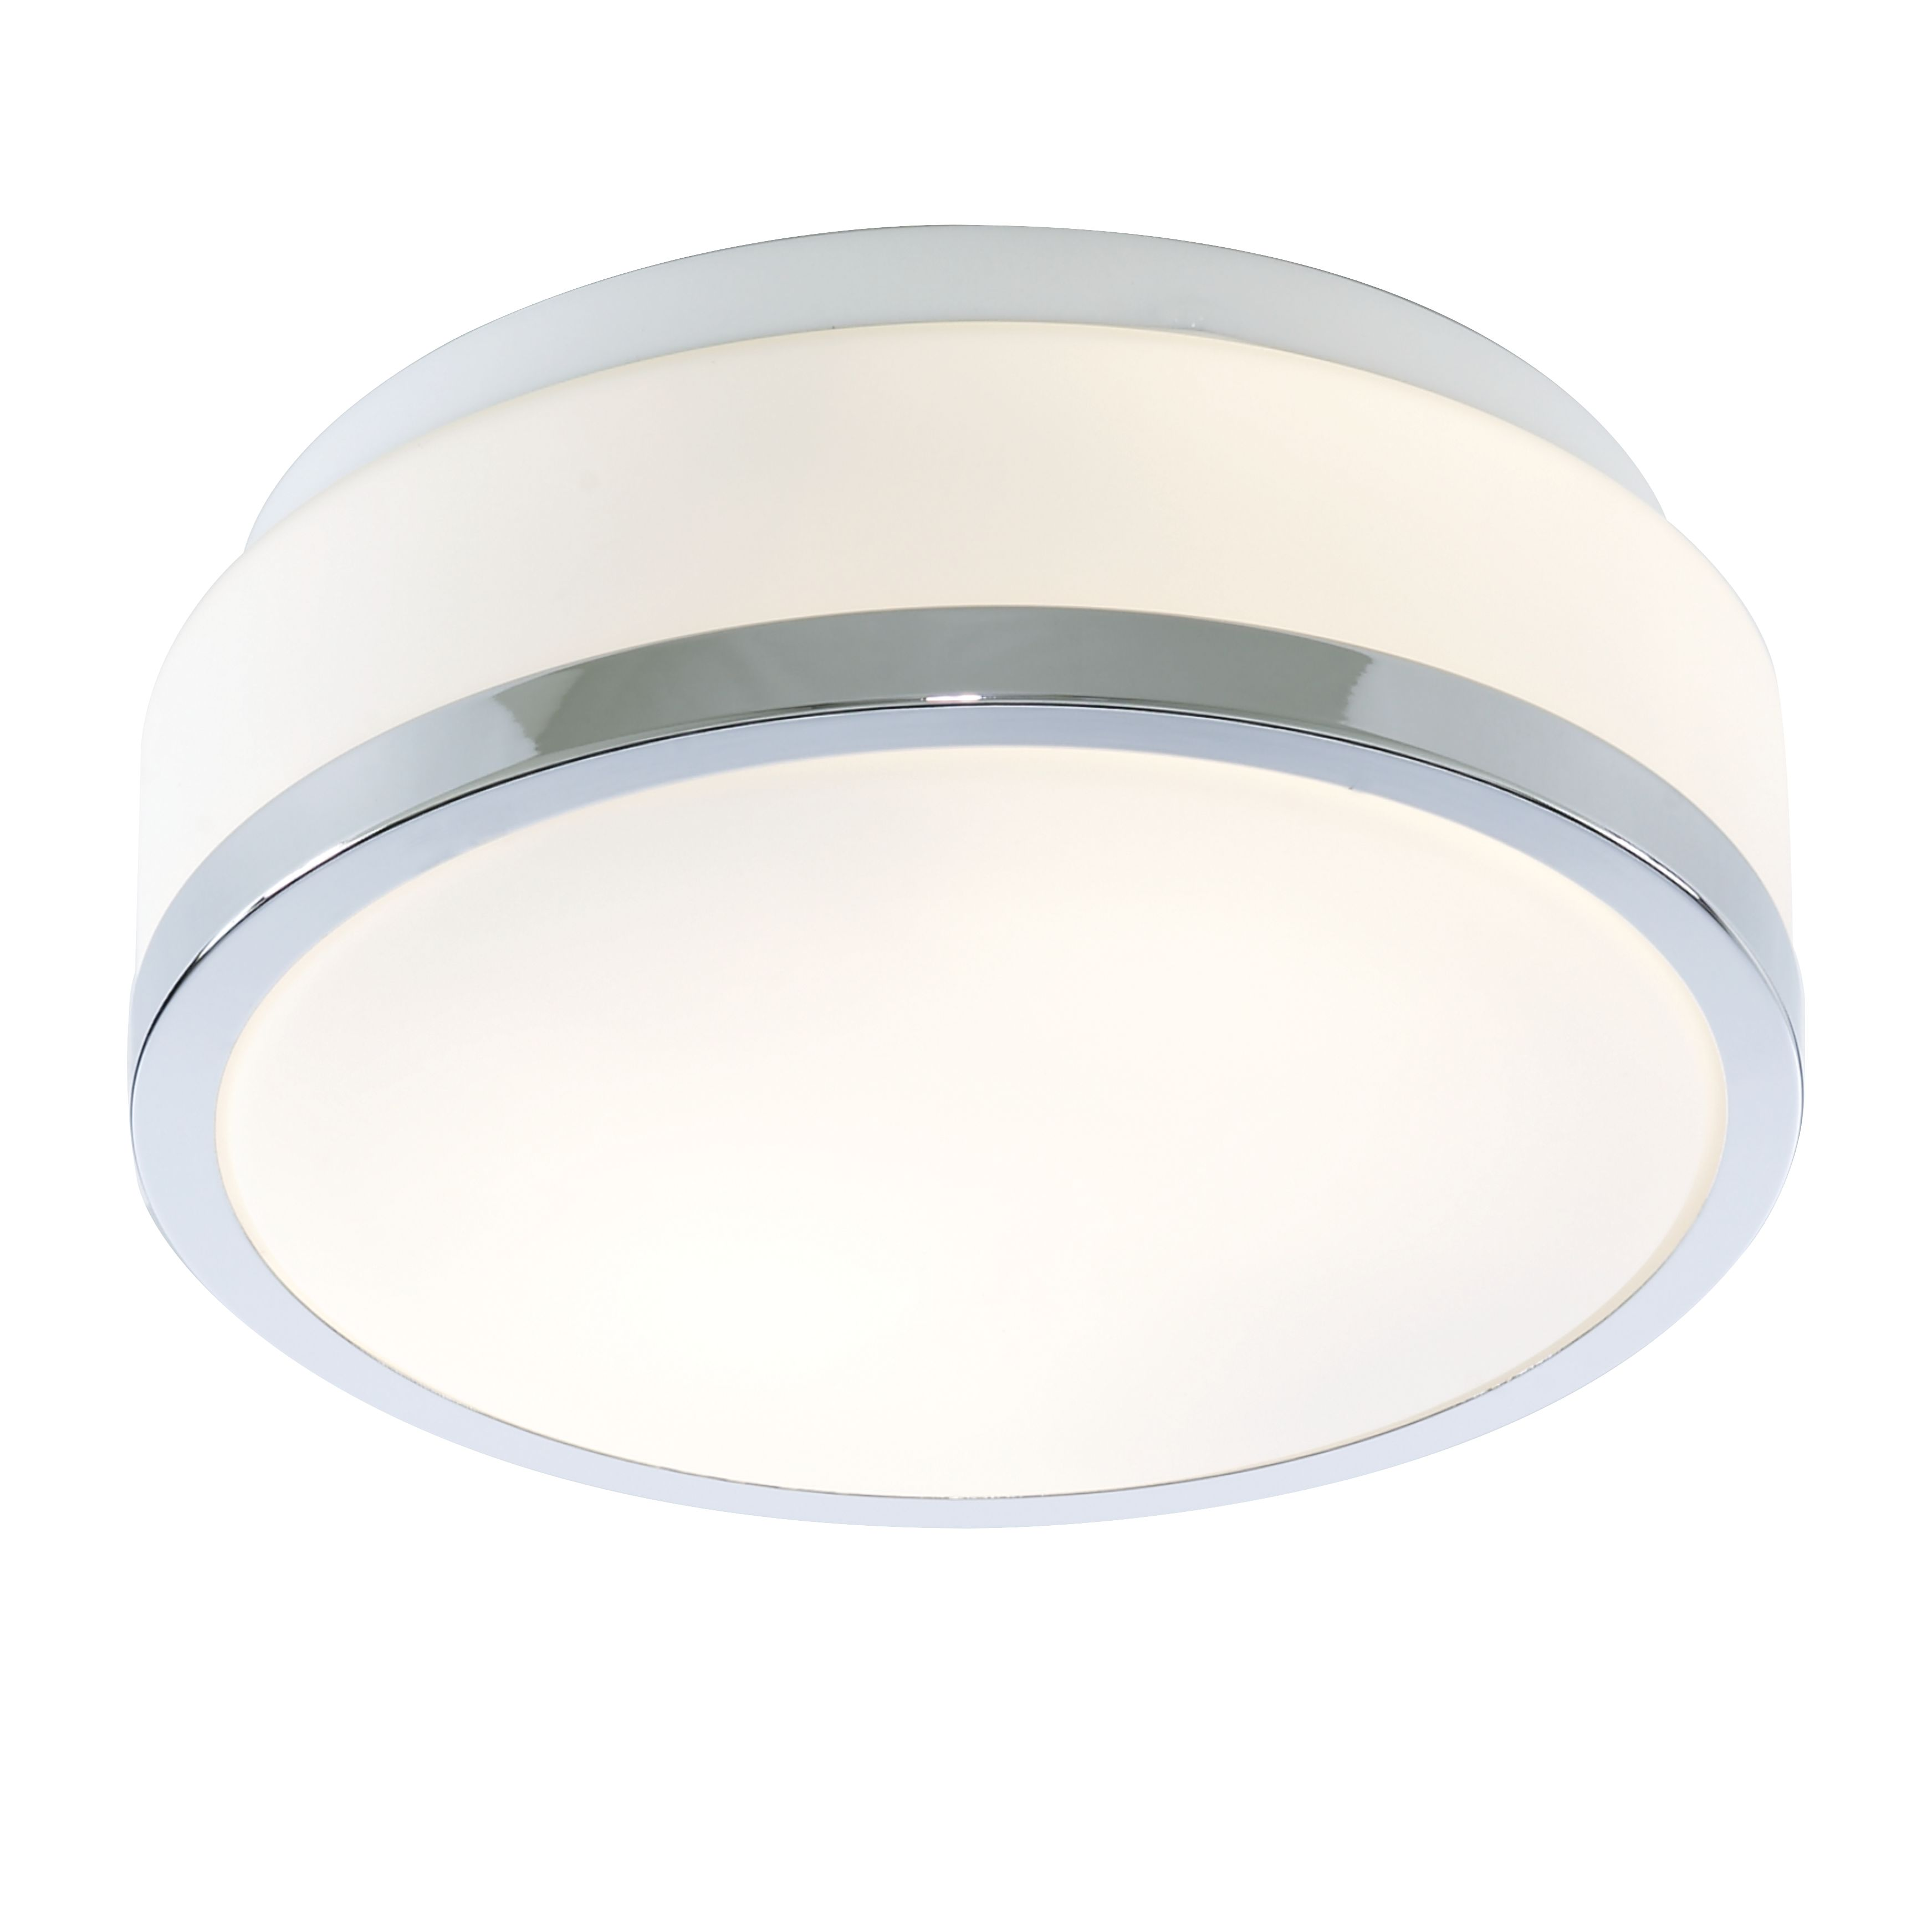 Ip44 2 Light Flush Fitting With Opal Glass Shade & Chrome Trim